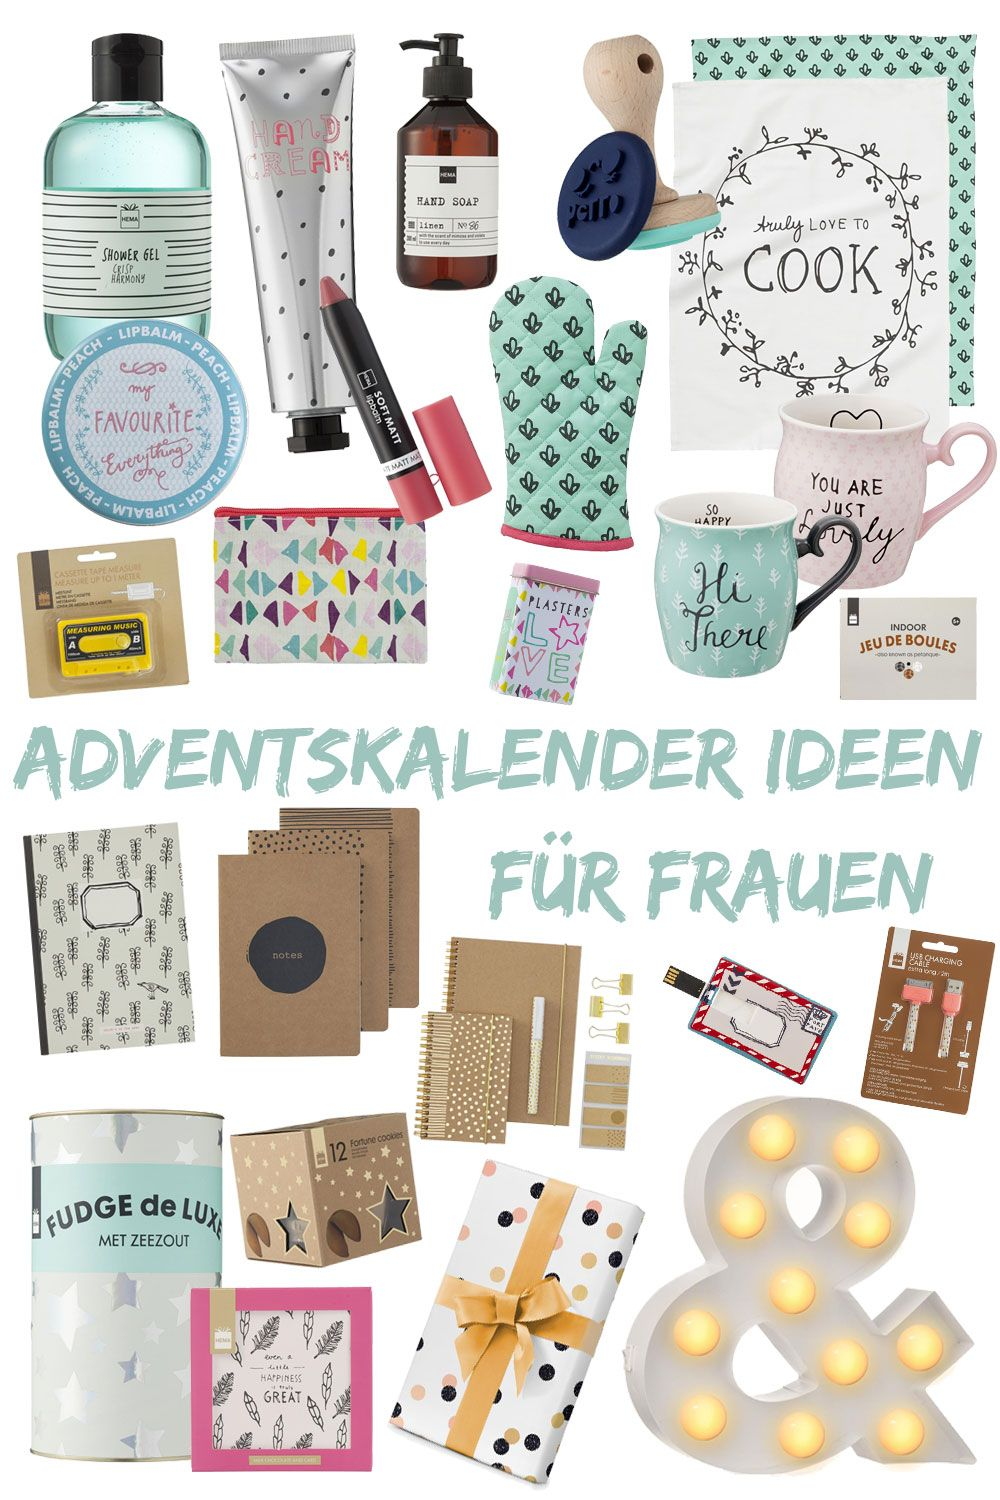 adventskalender bef llen ideen f r frauen diy. Black Bedroom Furniture Sets. Home Design Ideas